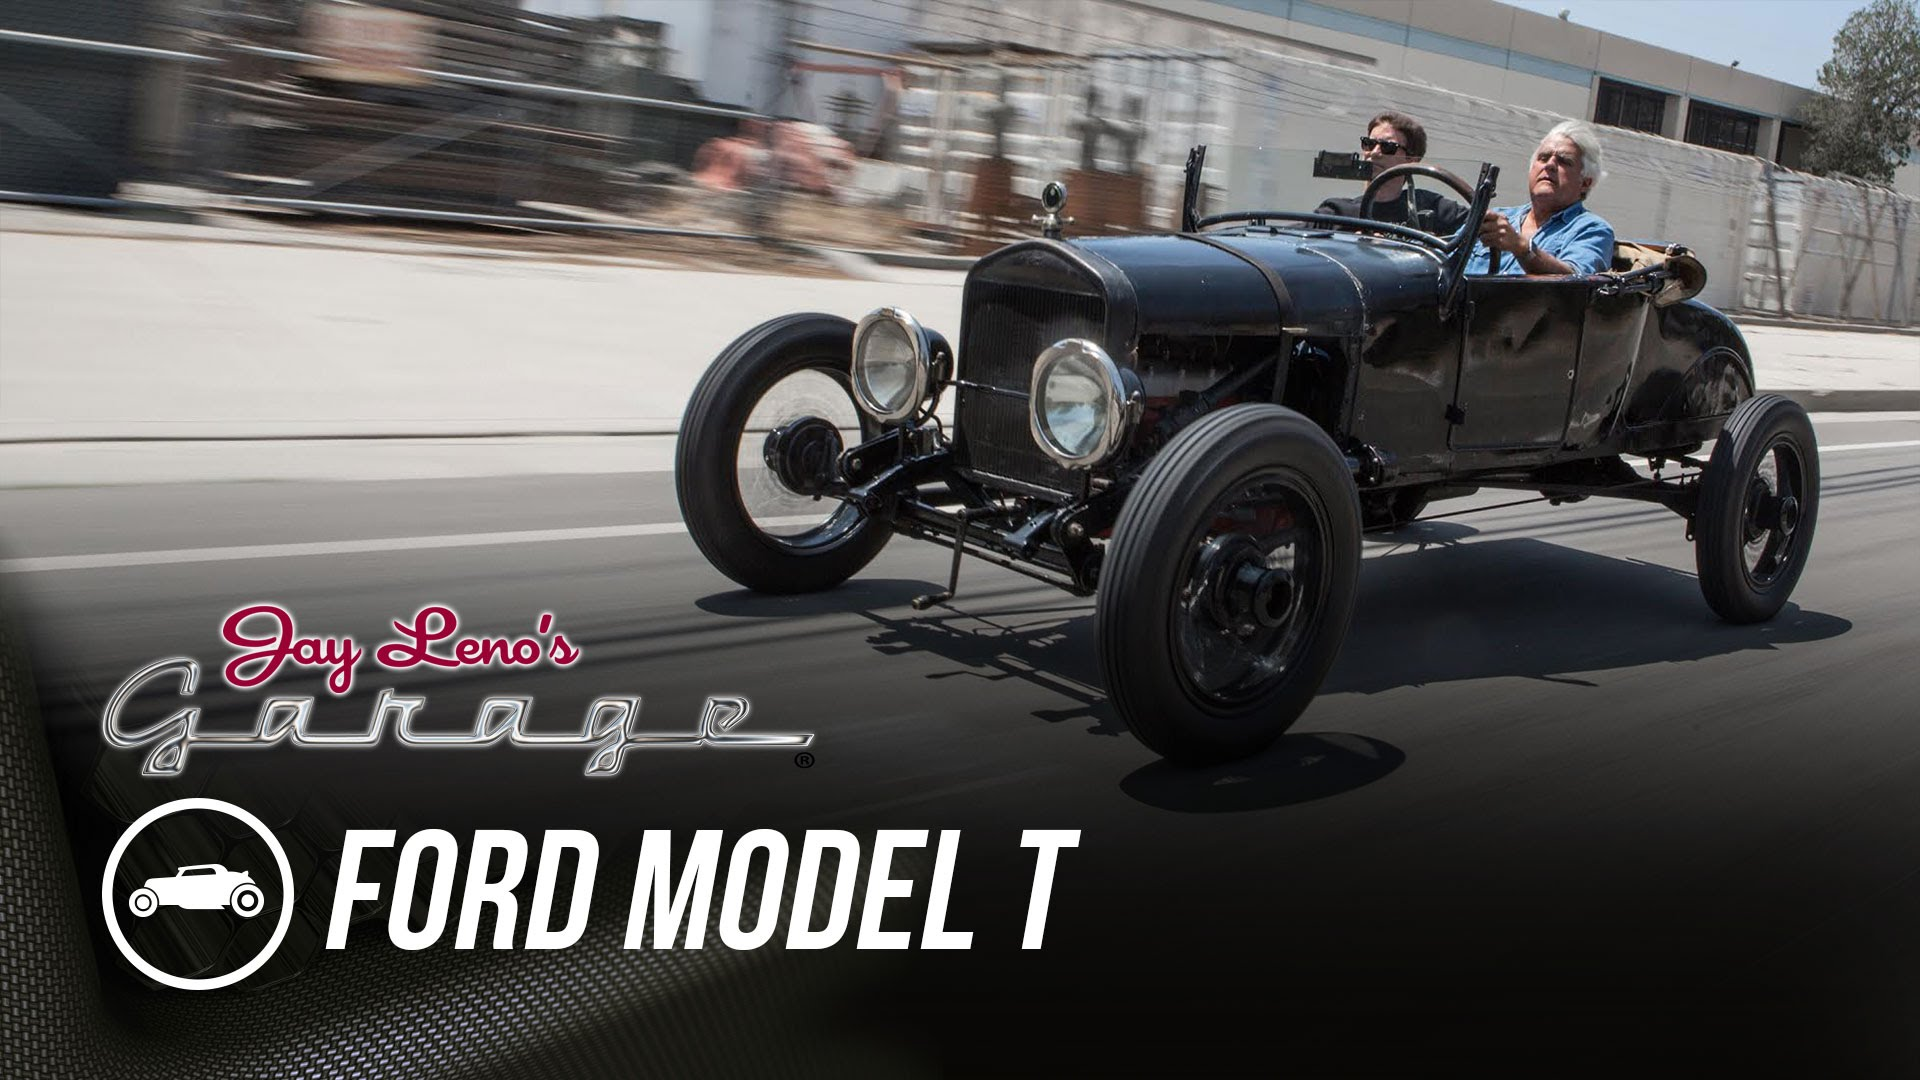 1927 Ford Model T Hot Rod - The Awesomer